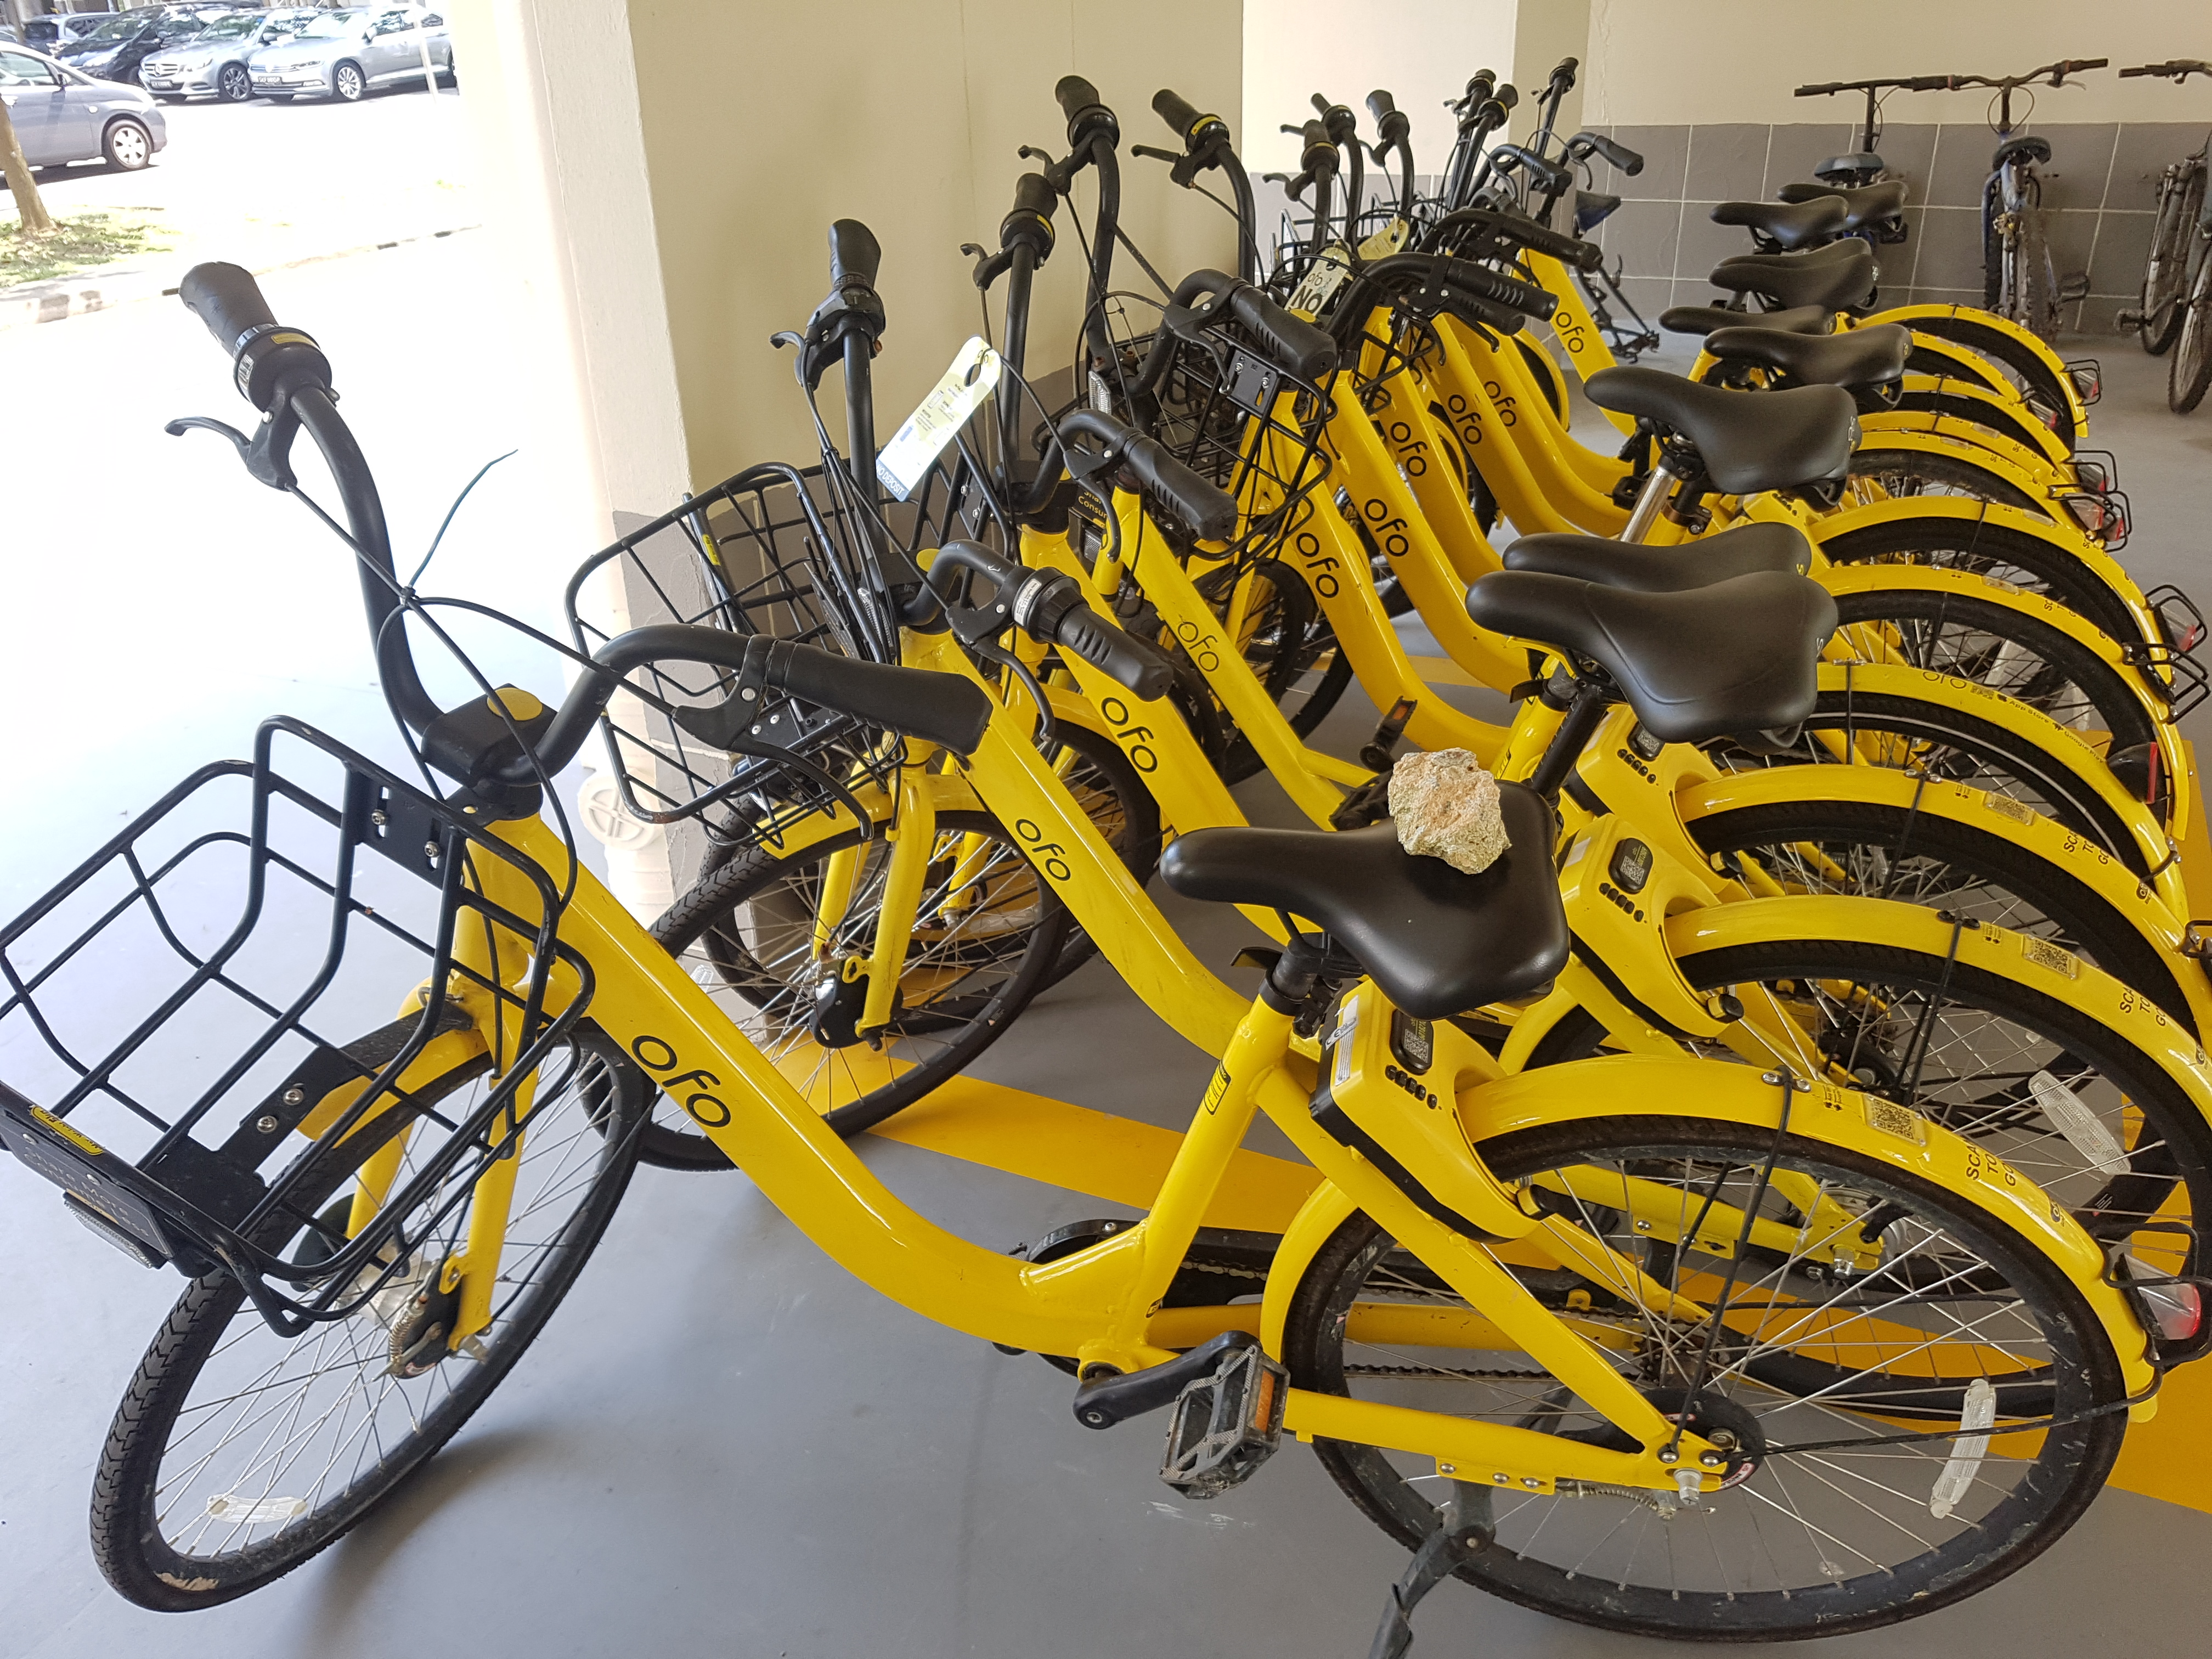 LTA has granted ofo a maximum fleet size of 25,000 bicycles in Singapore. Photo courtesy: Wikimedia